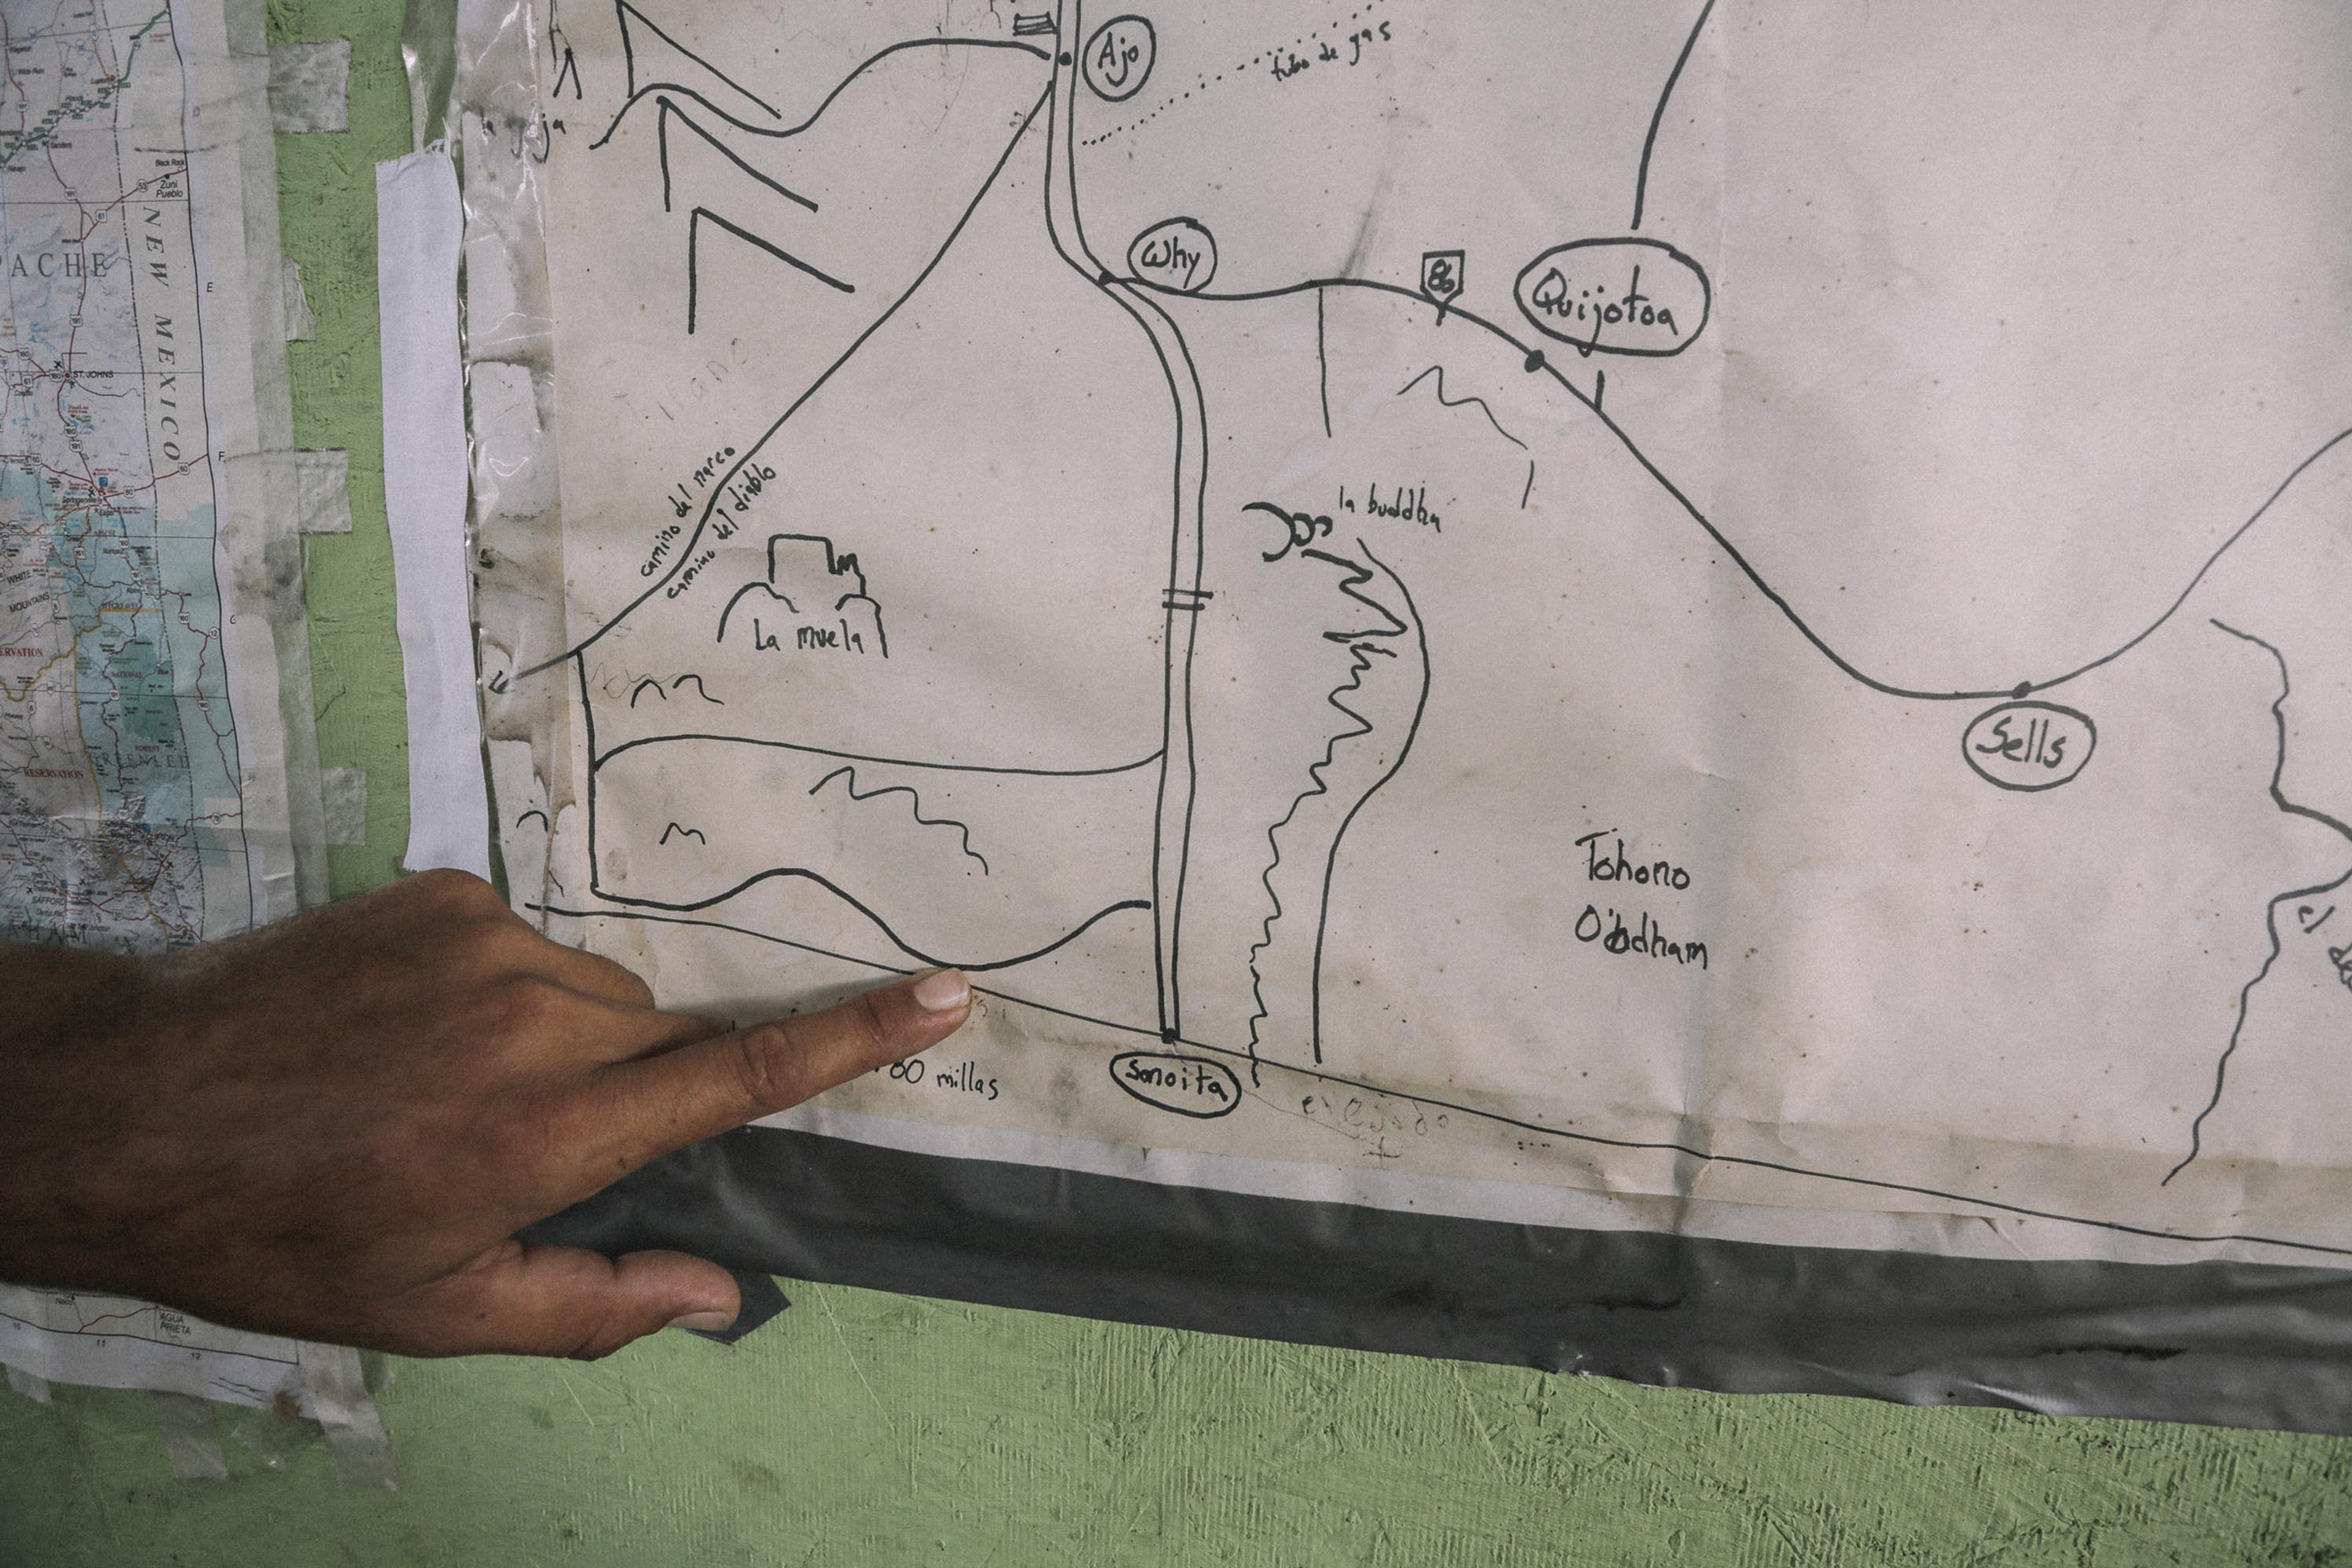 2261: A hand-drawn map posted on the wall of the Sonoyta shelter gives migrants a rough idea of the surrounding desert. June 2019. Photo by Jason Motlagh.